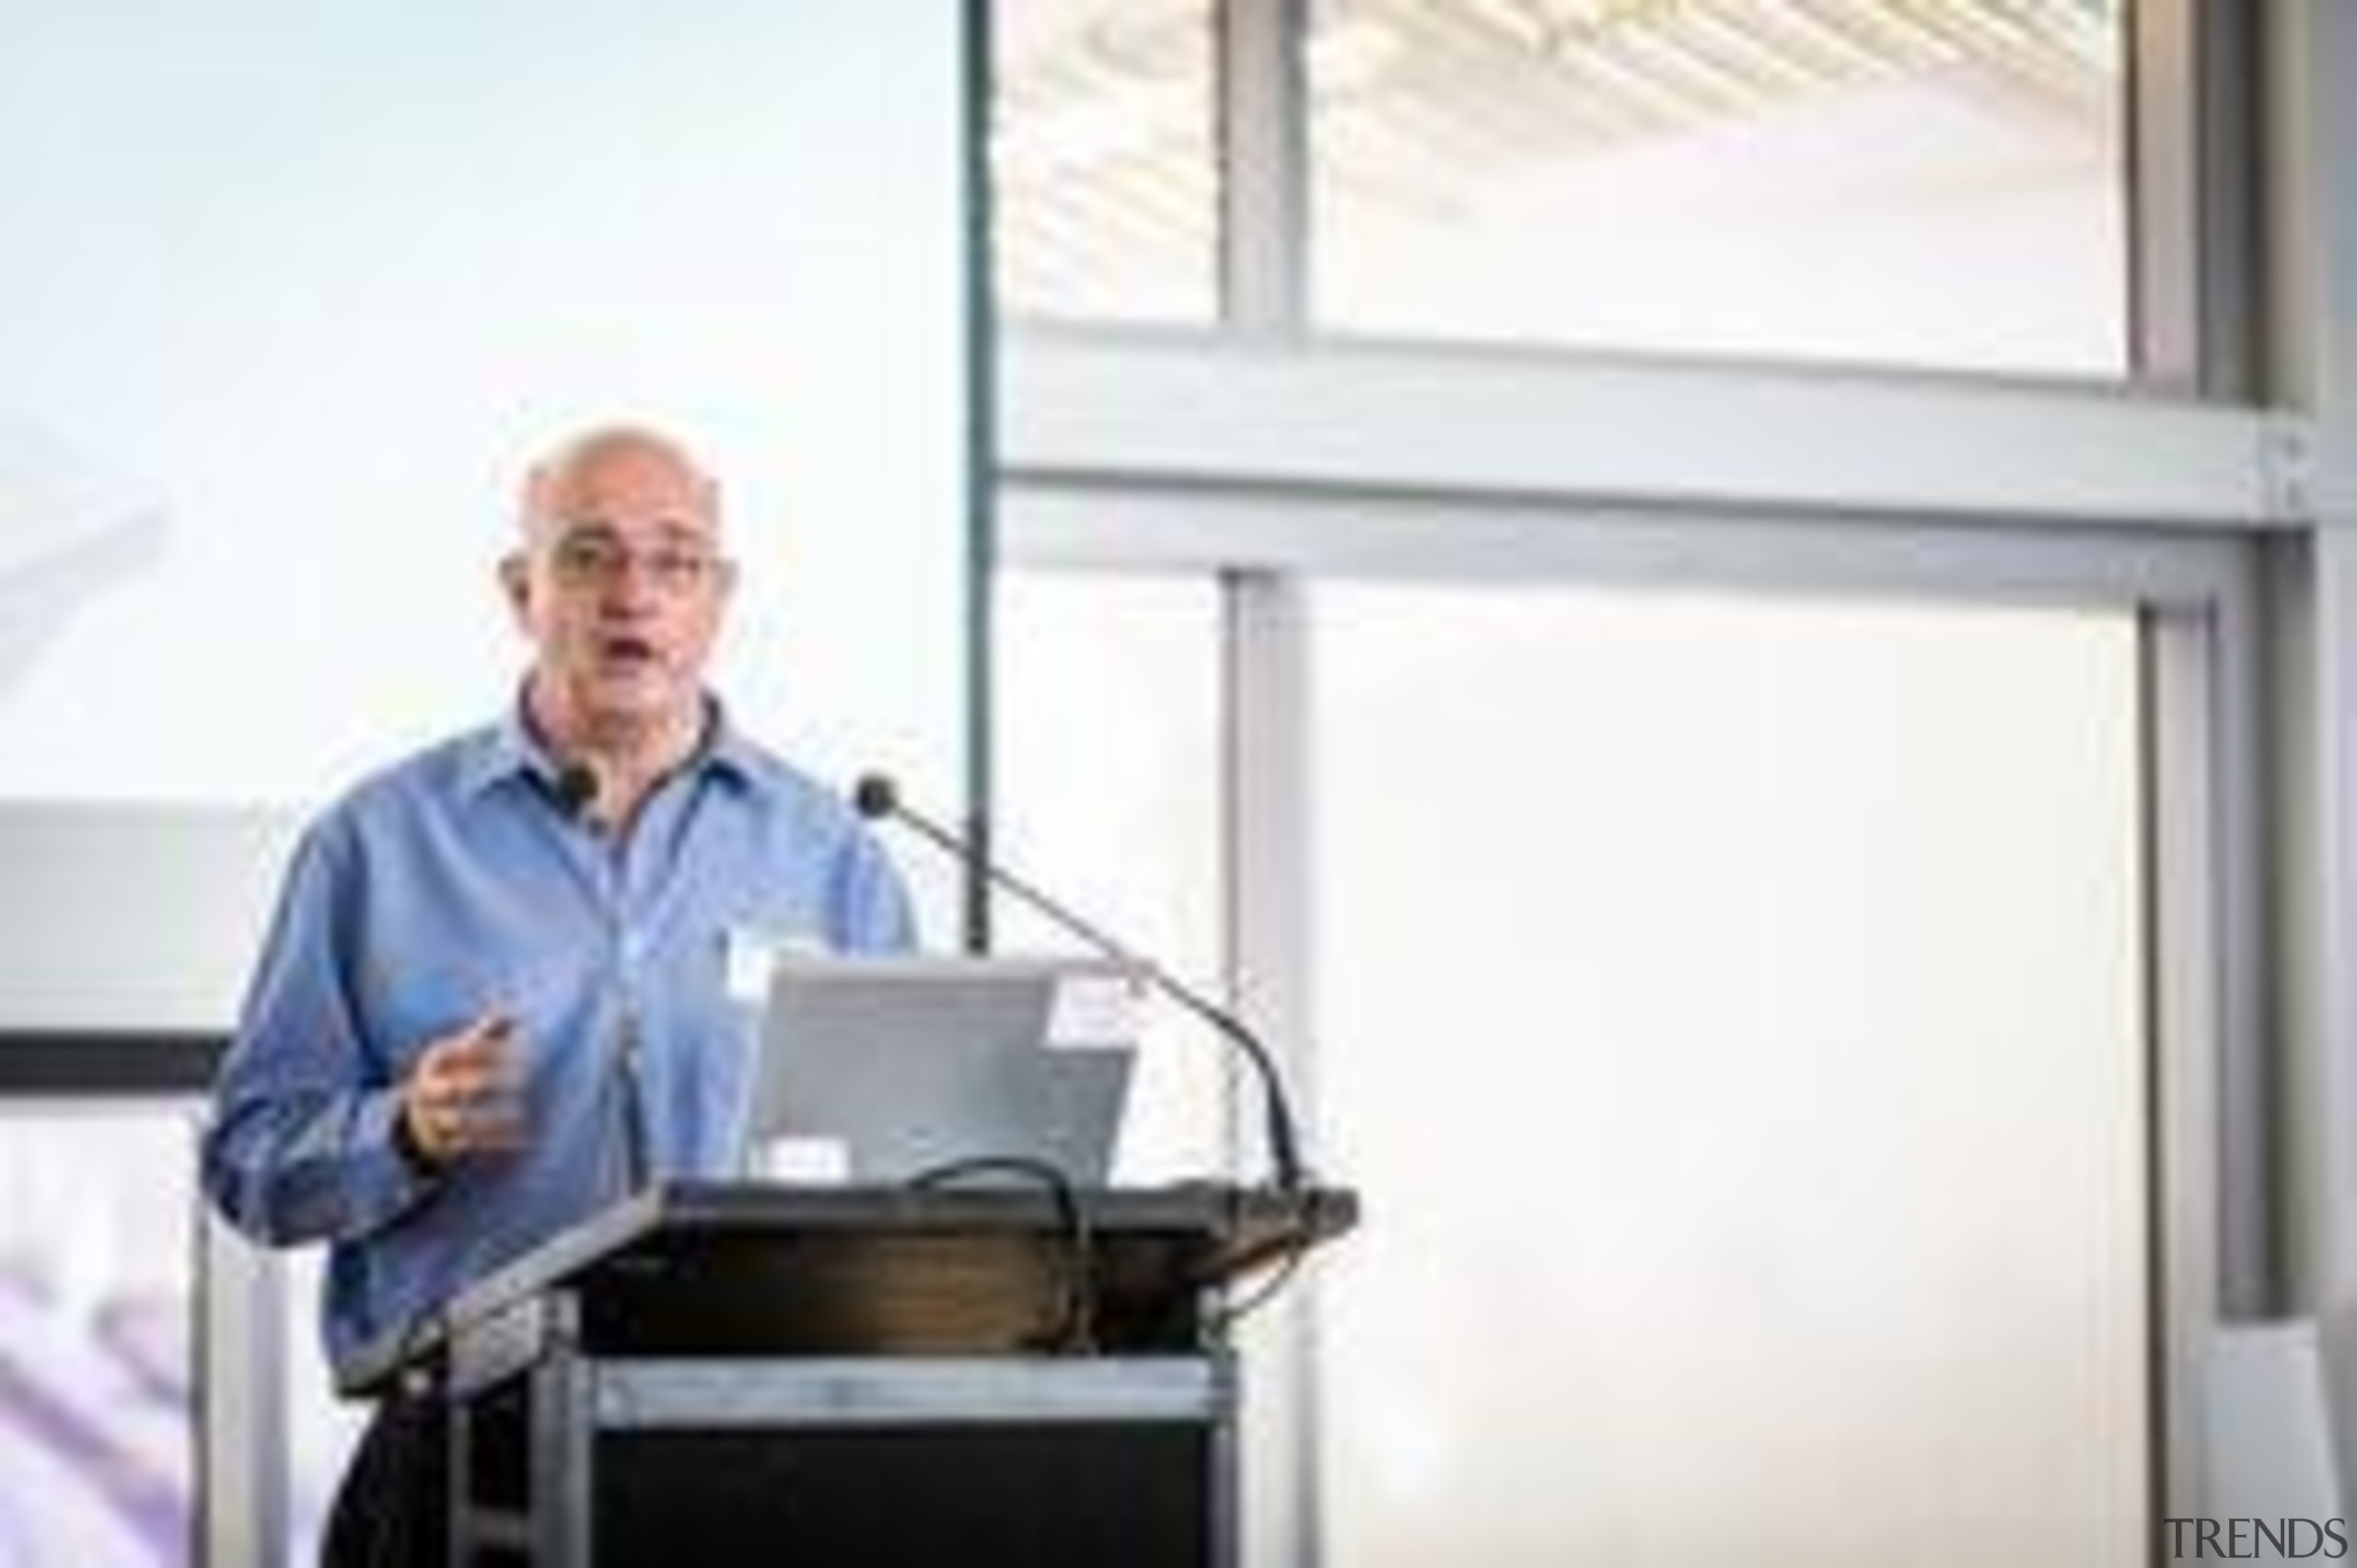 John Lukaszewicz, from Cladding Systems NZ, speaking at business, communication, energy, professional, service, technology, window, white